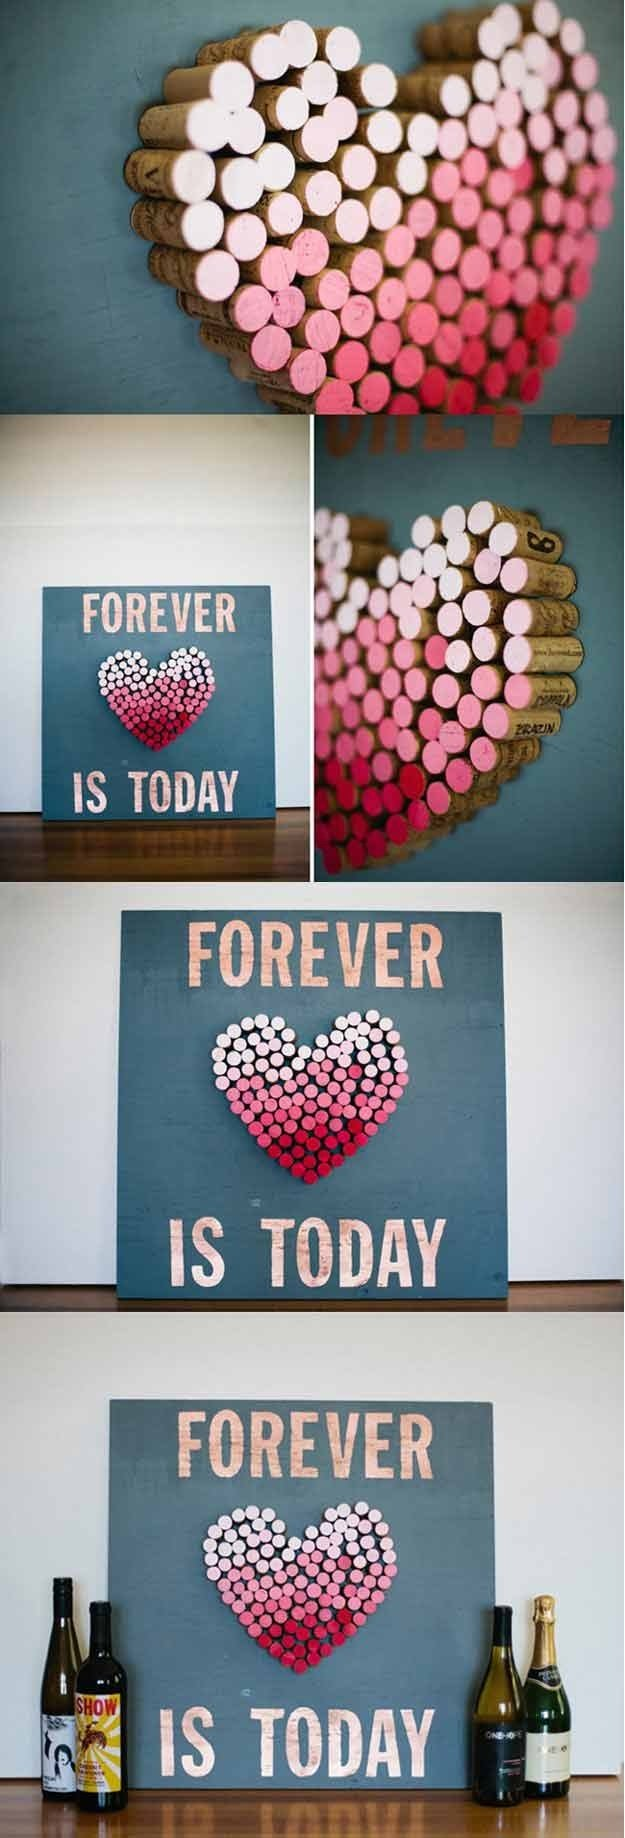 10 Ideal Cool Craft Ideas For Your Room projects for teens bedrooms diy projects craft ideas how tos for